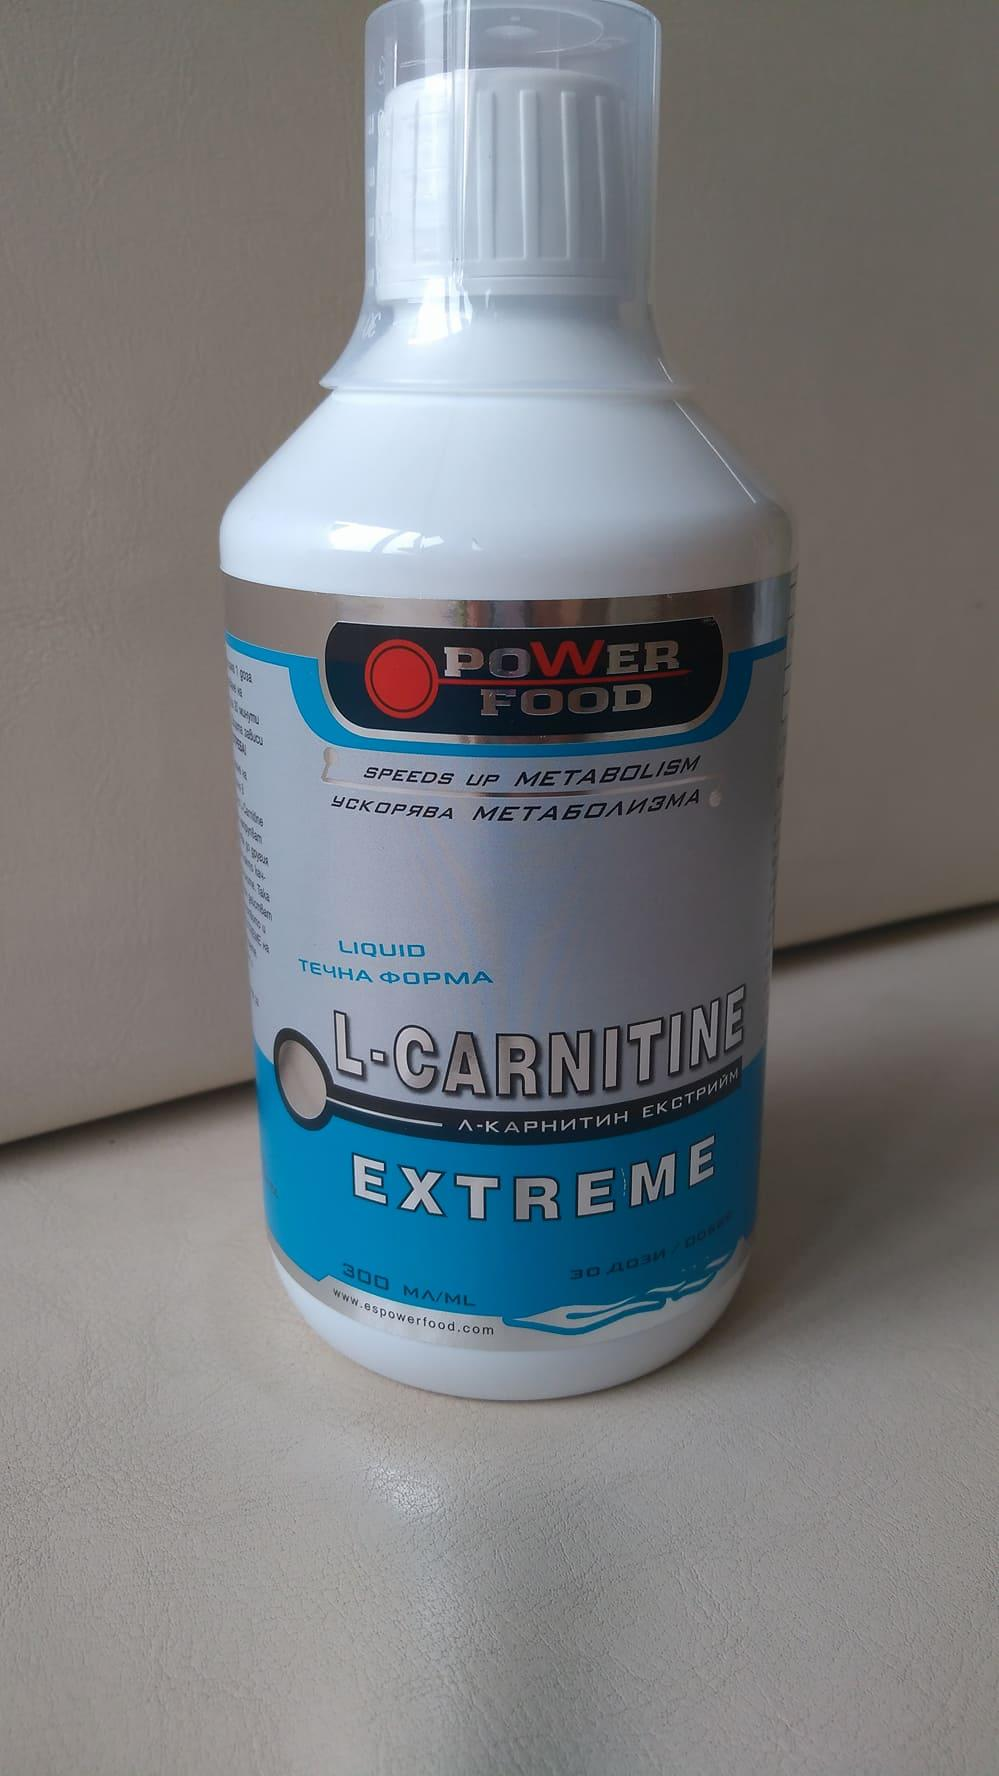 L-Carnitine Extreme (liquid) - 300 ml.